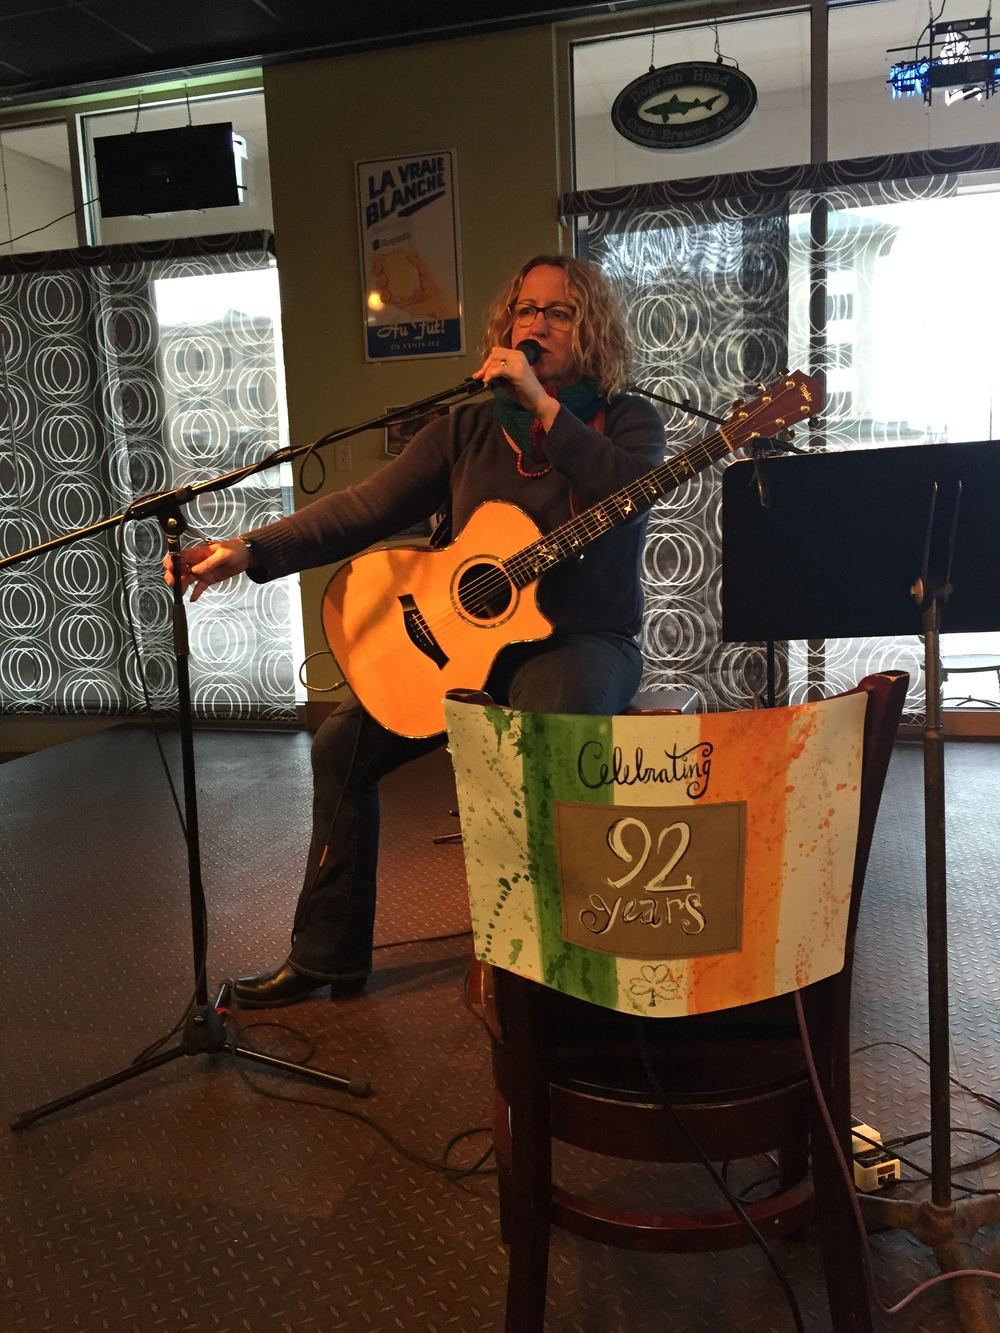 In the United States, Meg Gehman has a special concert to honor the Irish fight for independence on an important day in their history (Dec 6).